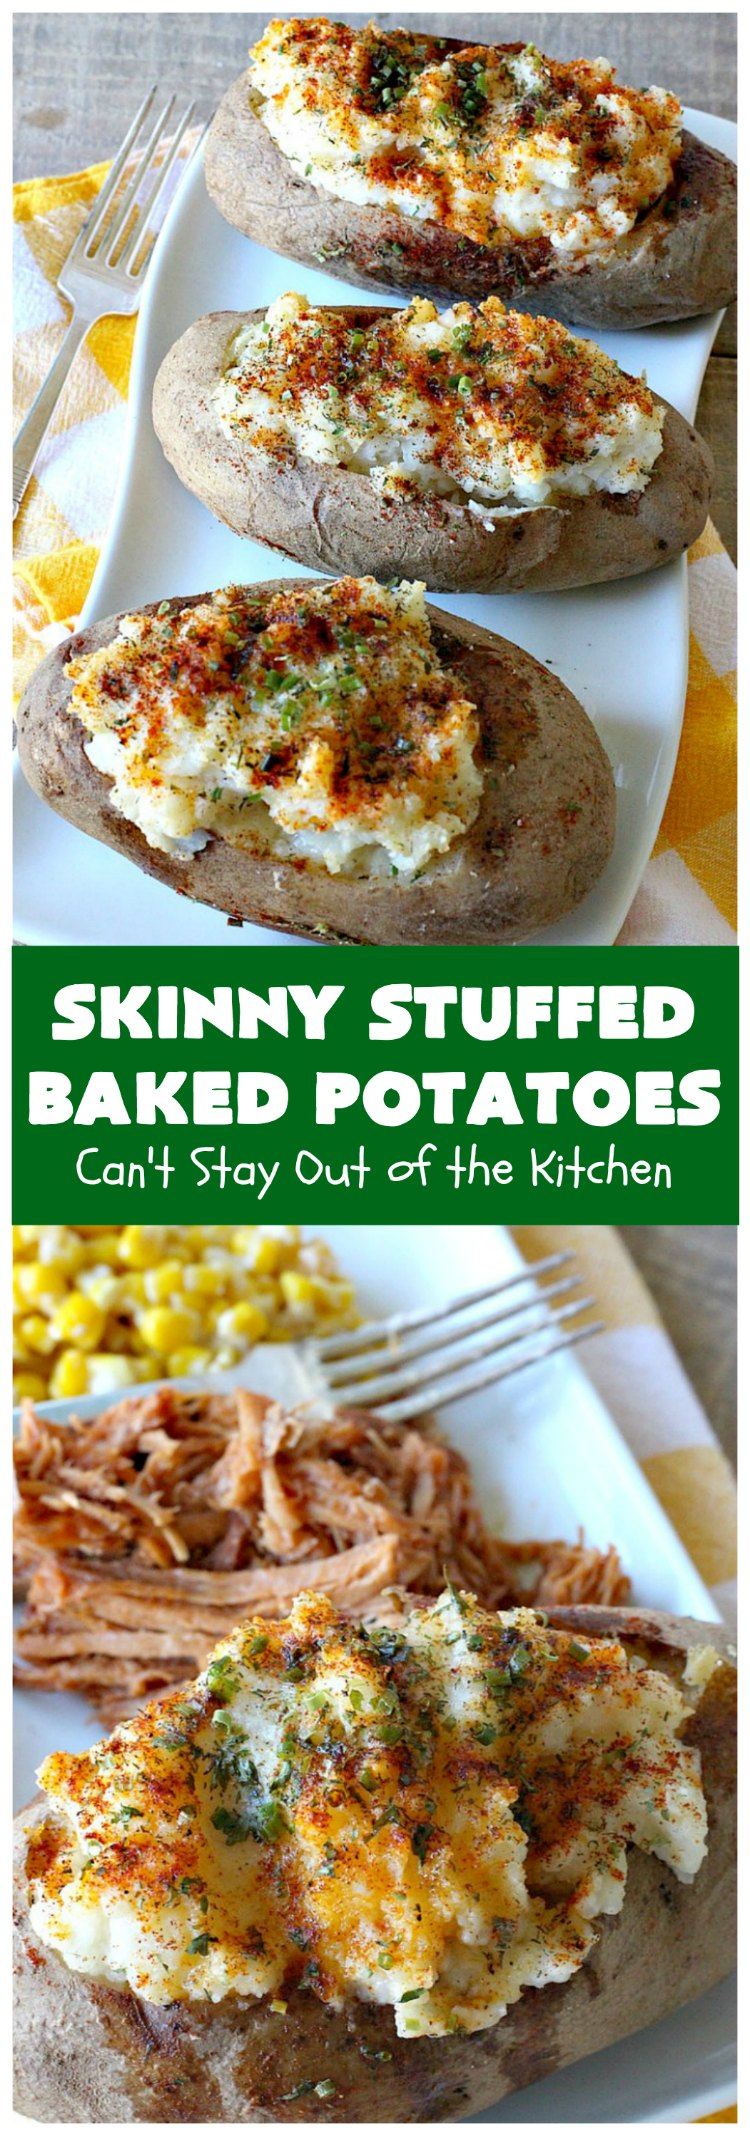 Skinny Stuffed Baked Potatoes | Can't Stay Out of the Kitchen